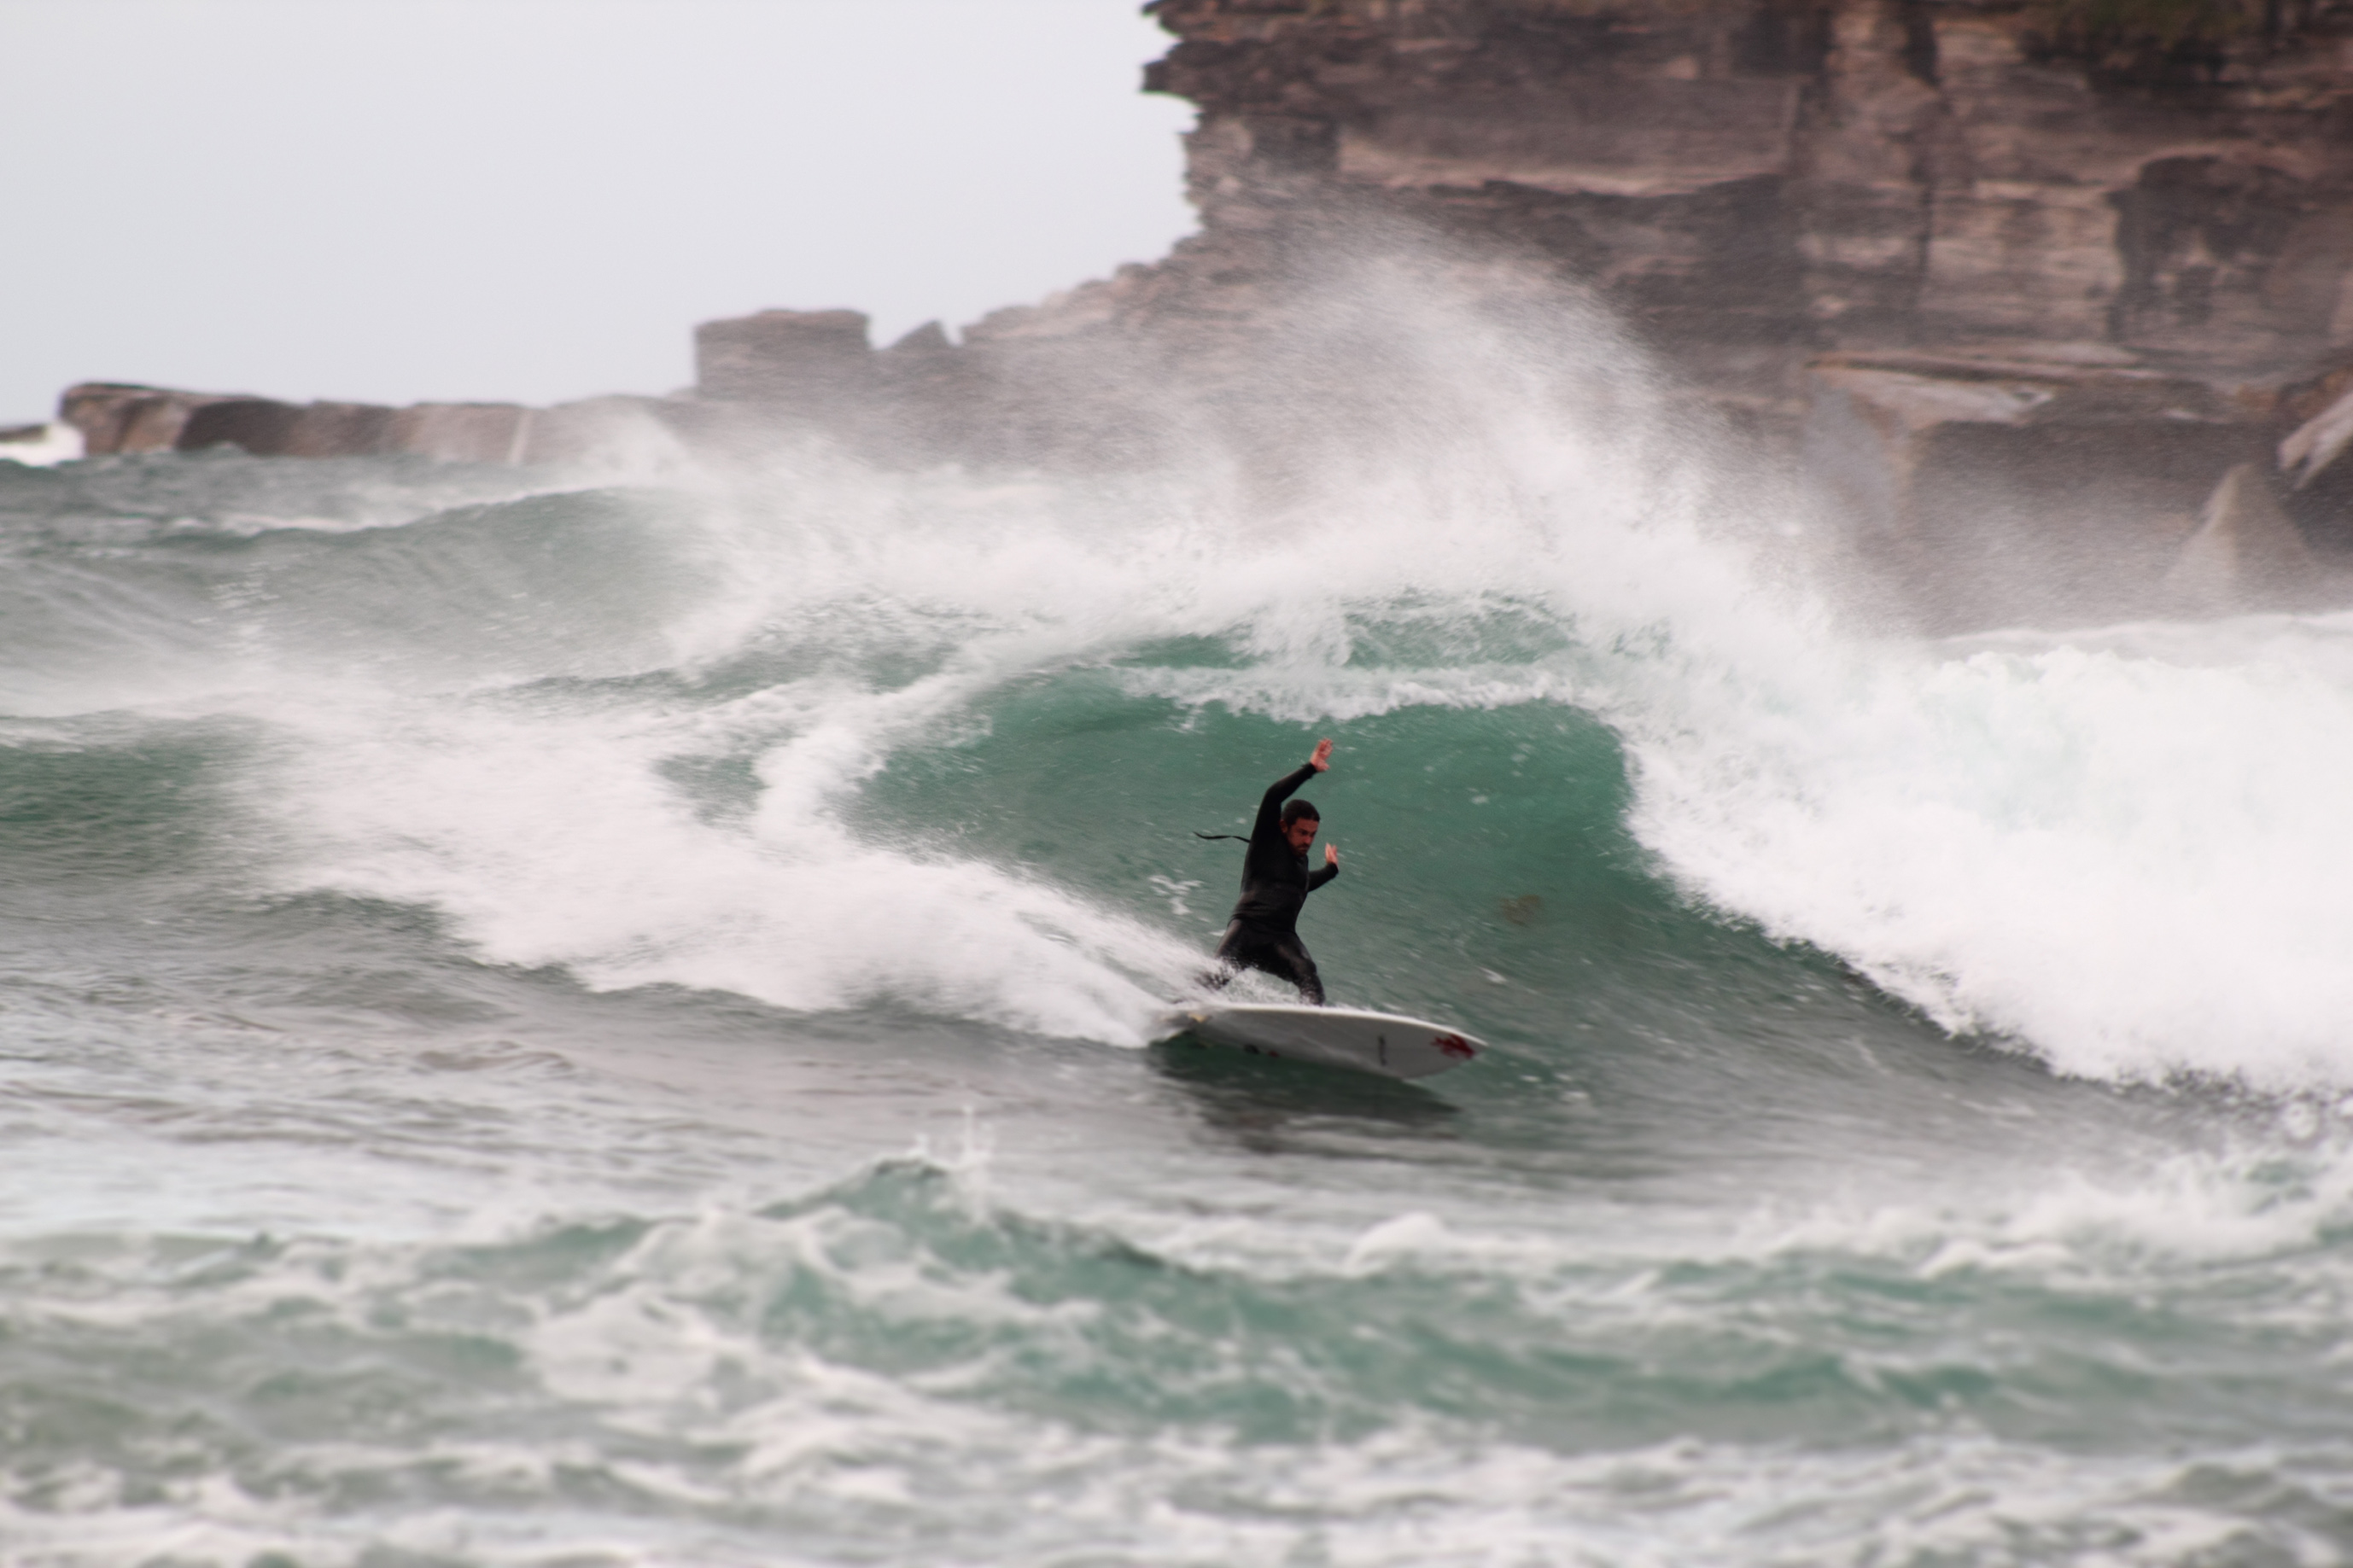 Nathan cutting back on a crisp wall. Photo: Mike Brown